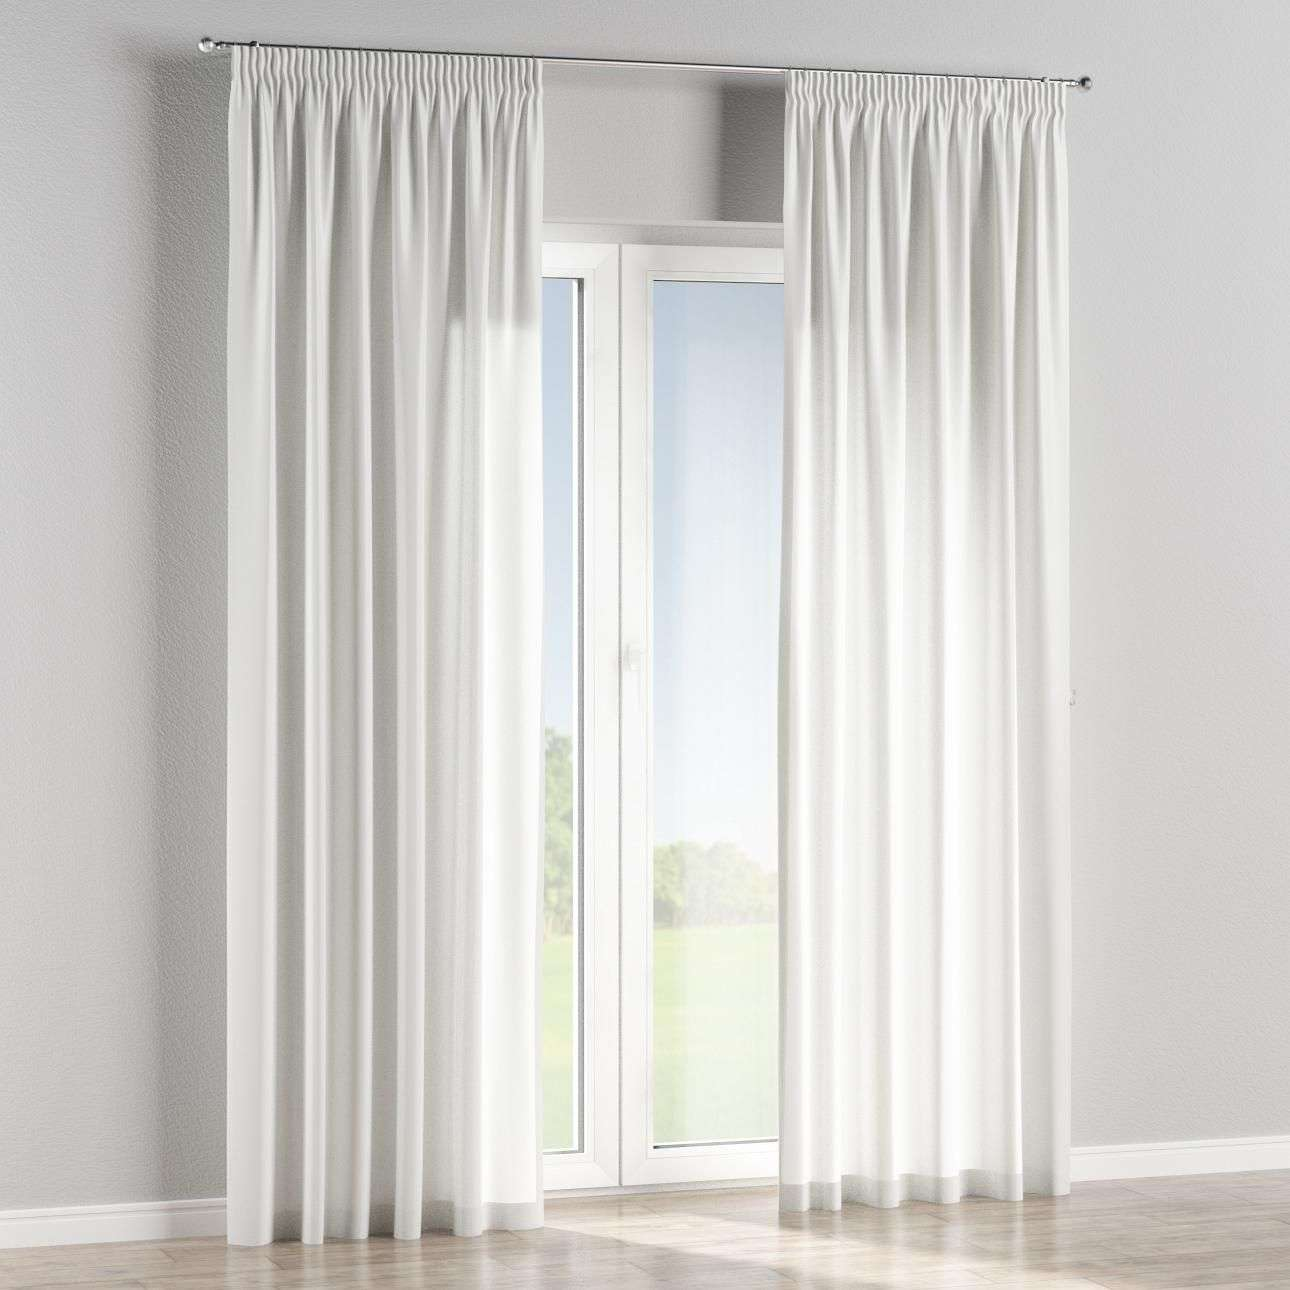 Pencil pleat curtains in collection New Art, fabric: 140-21